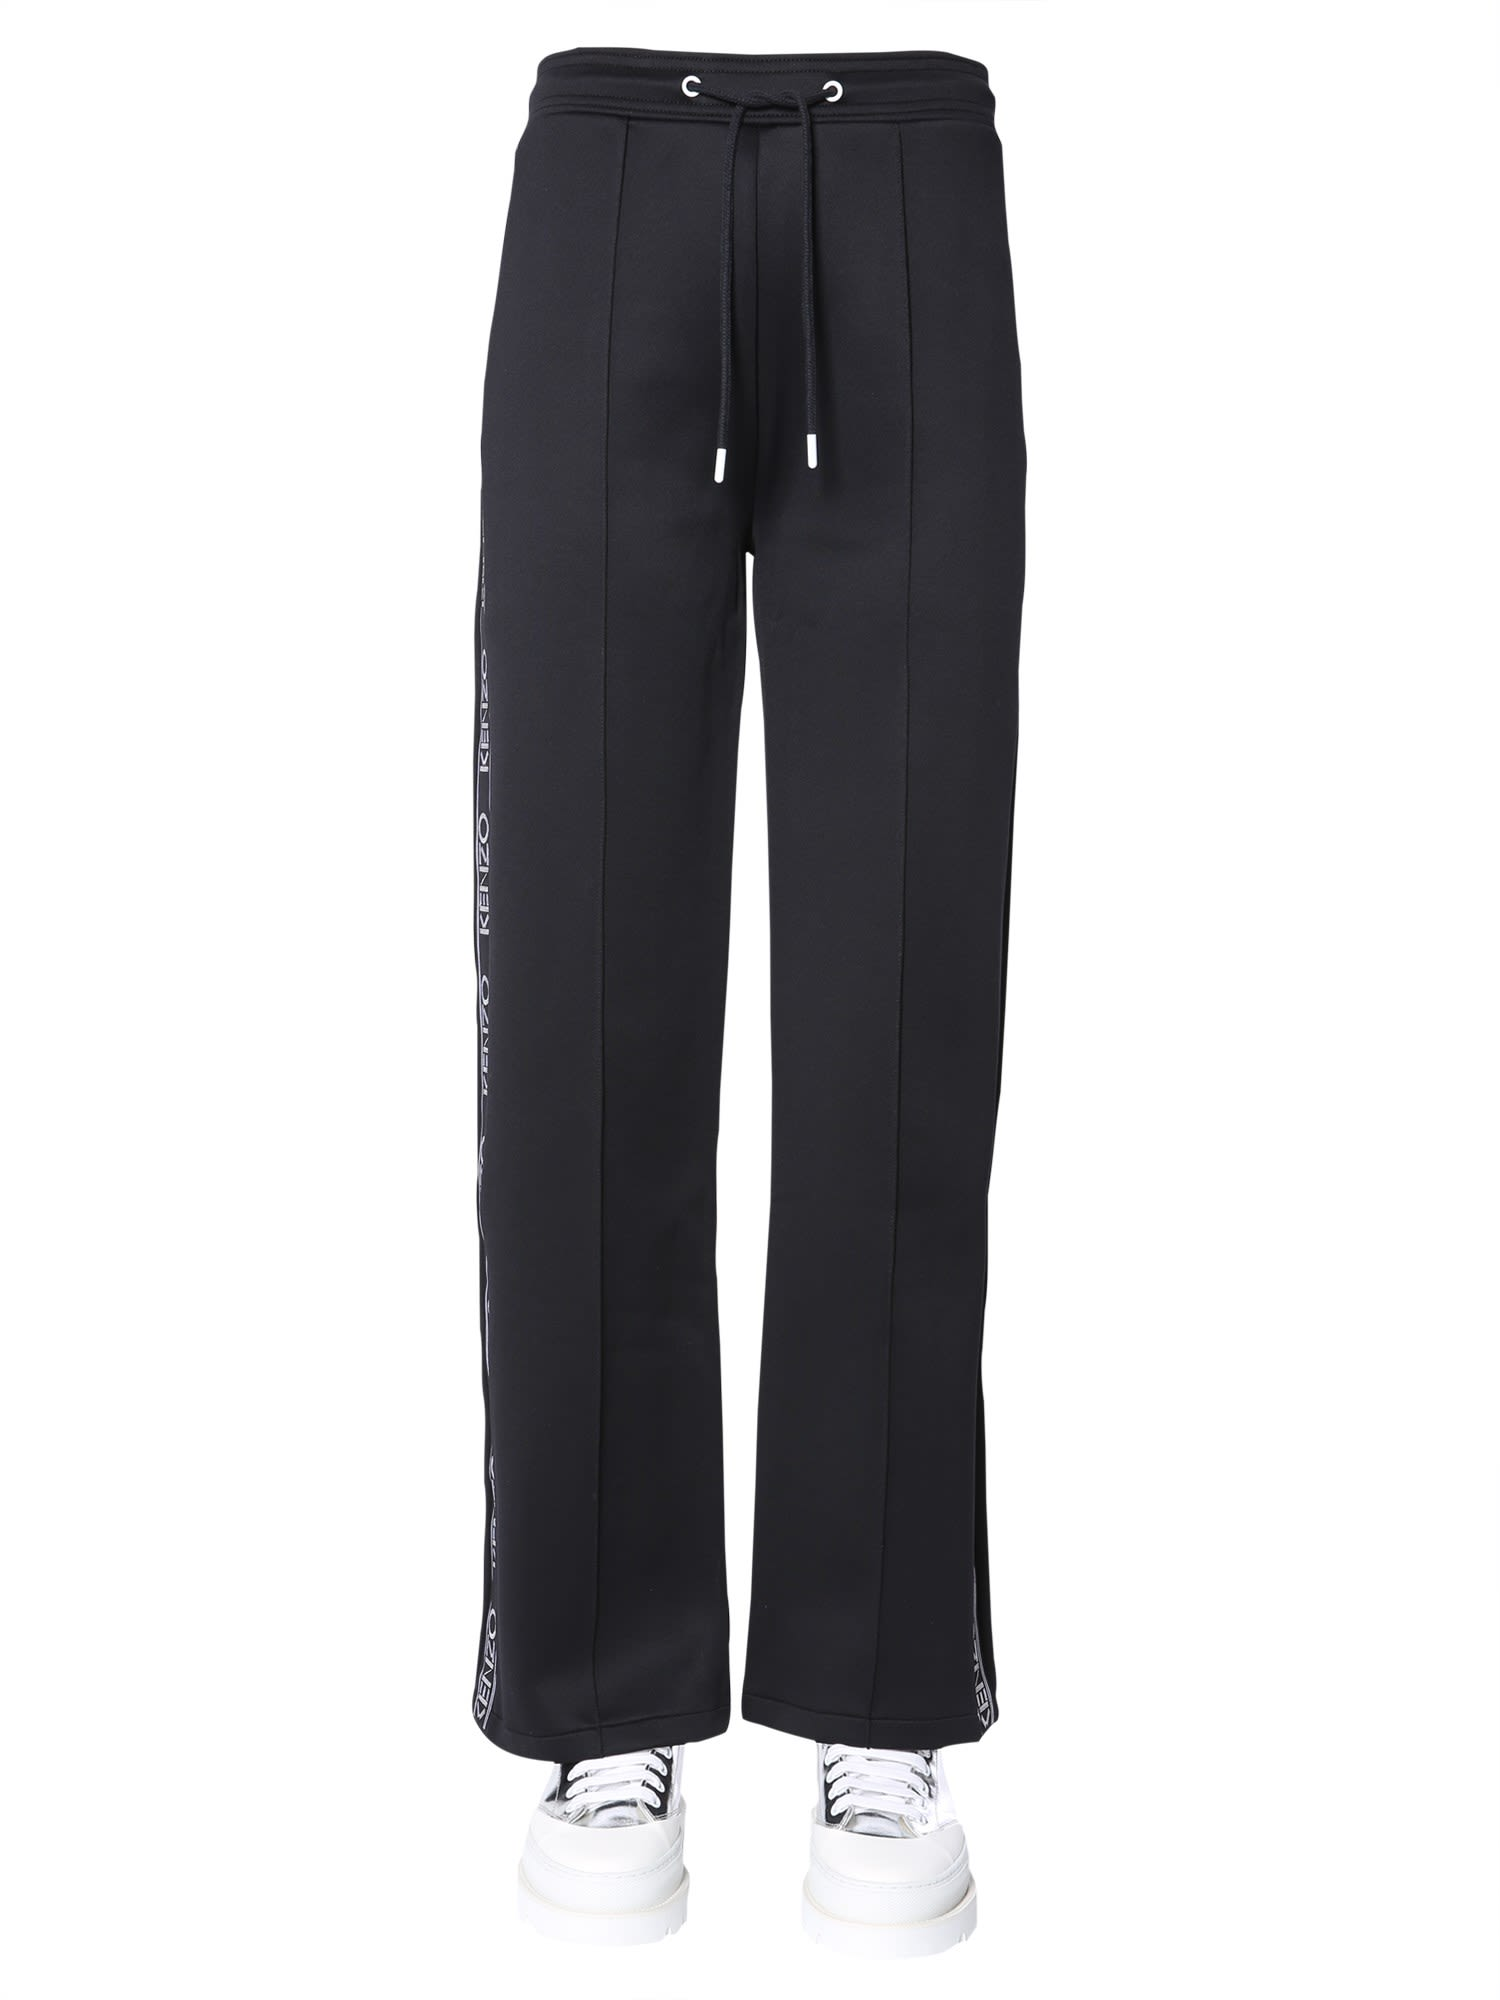 JOGGING TROUSERS from Italist.com